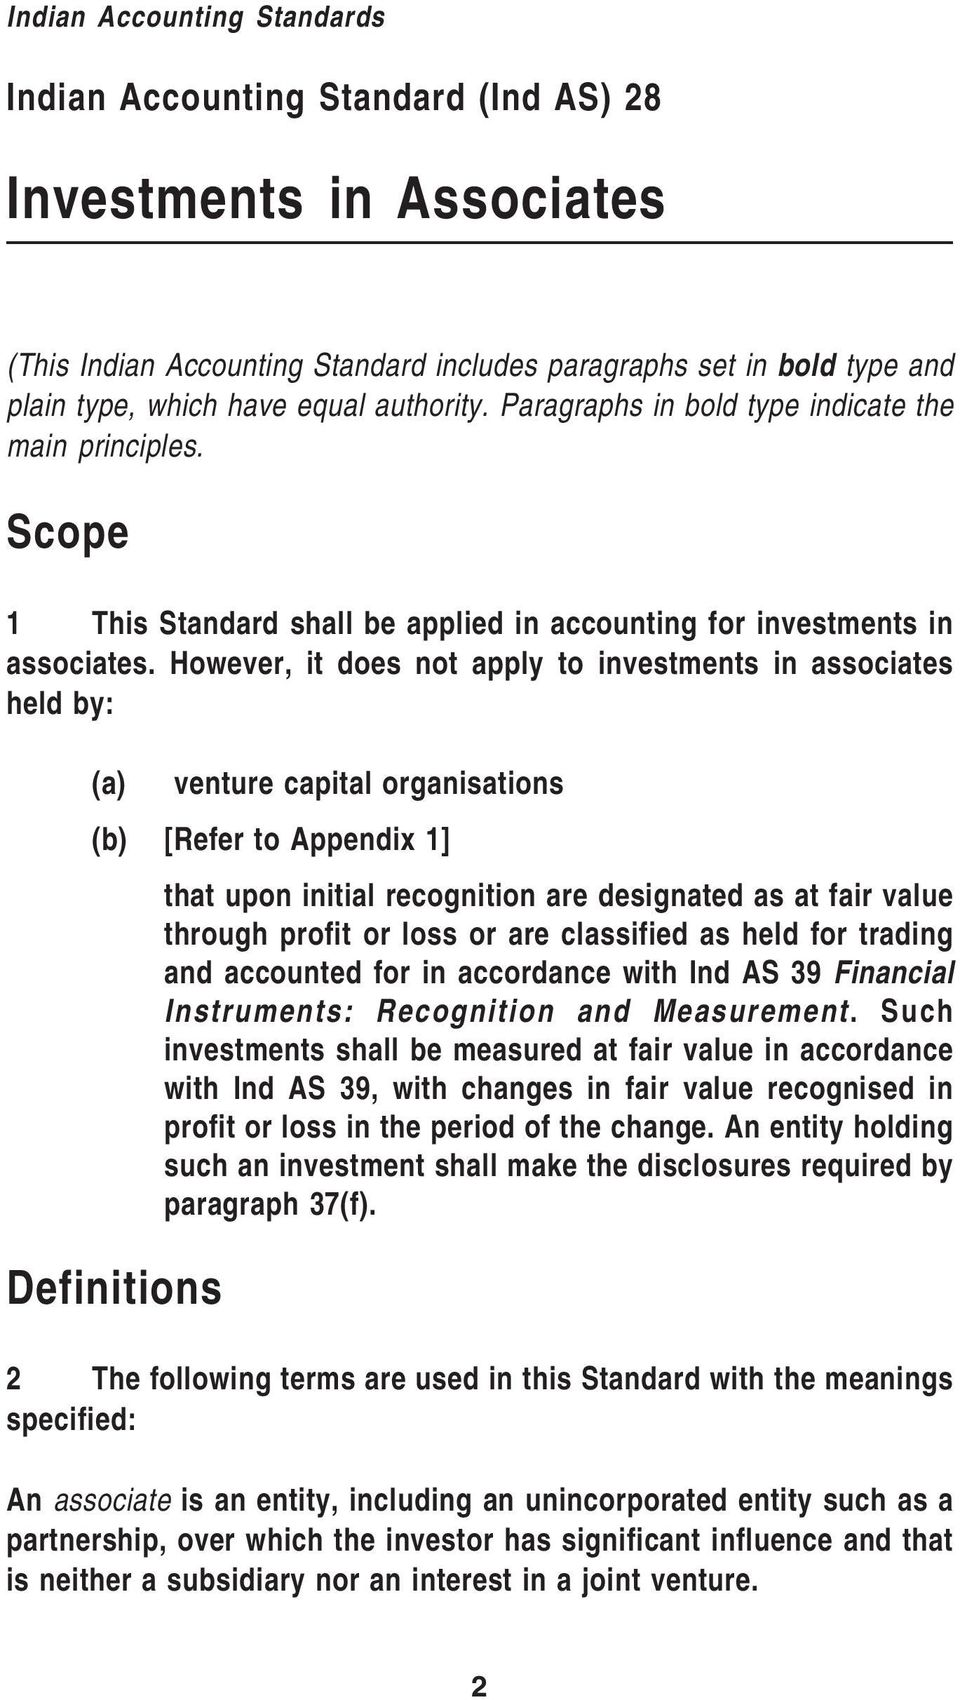 However, it does not apply to investments in associates held by: (a) venture capital organisations (b) [Refer to Appendix 1] that upon initial recognition are designated as at fair value through